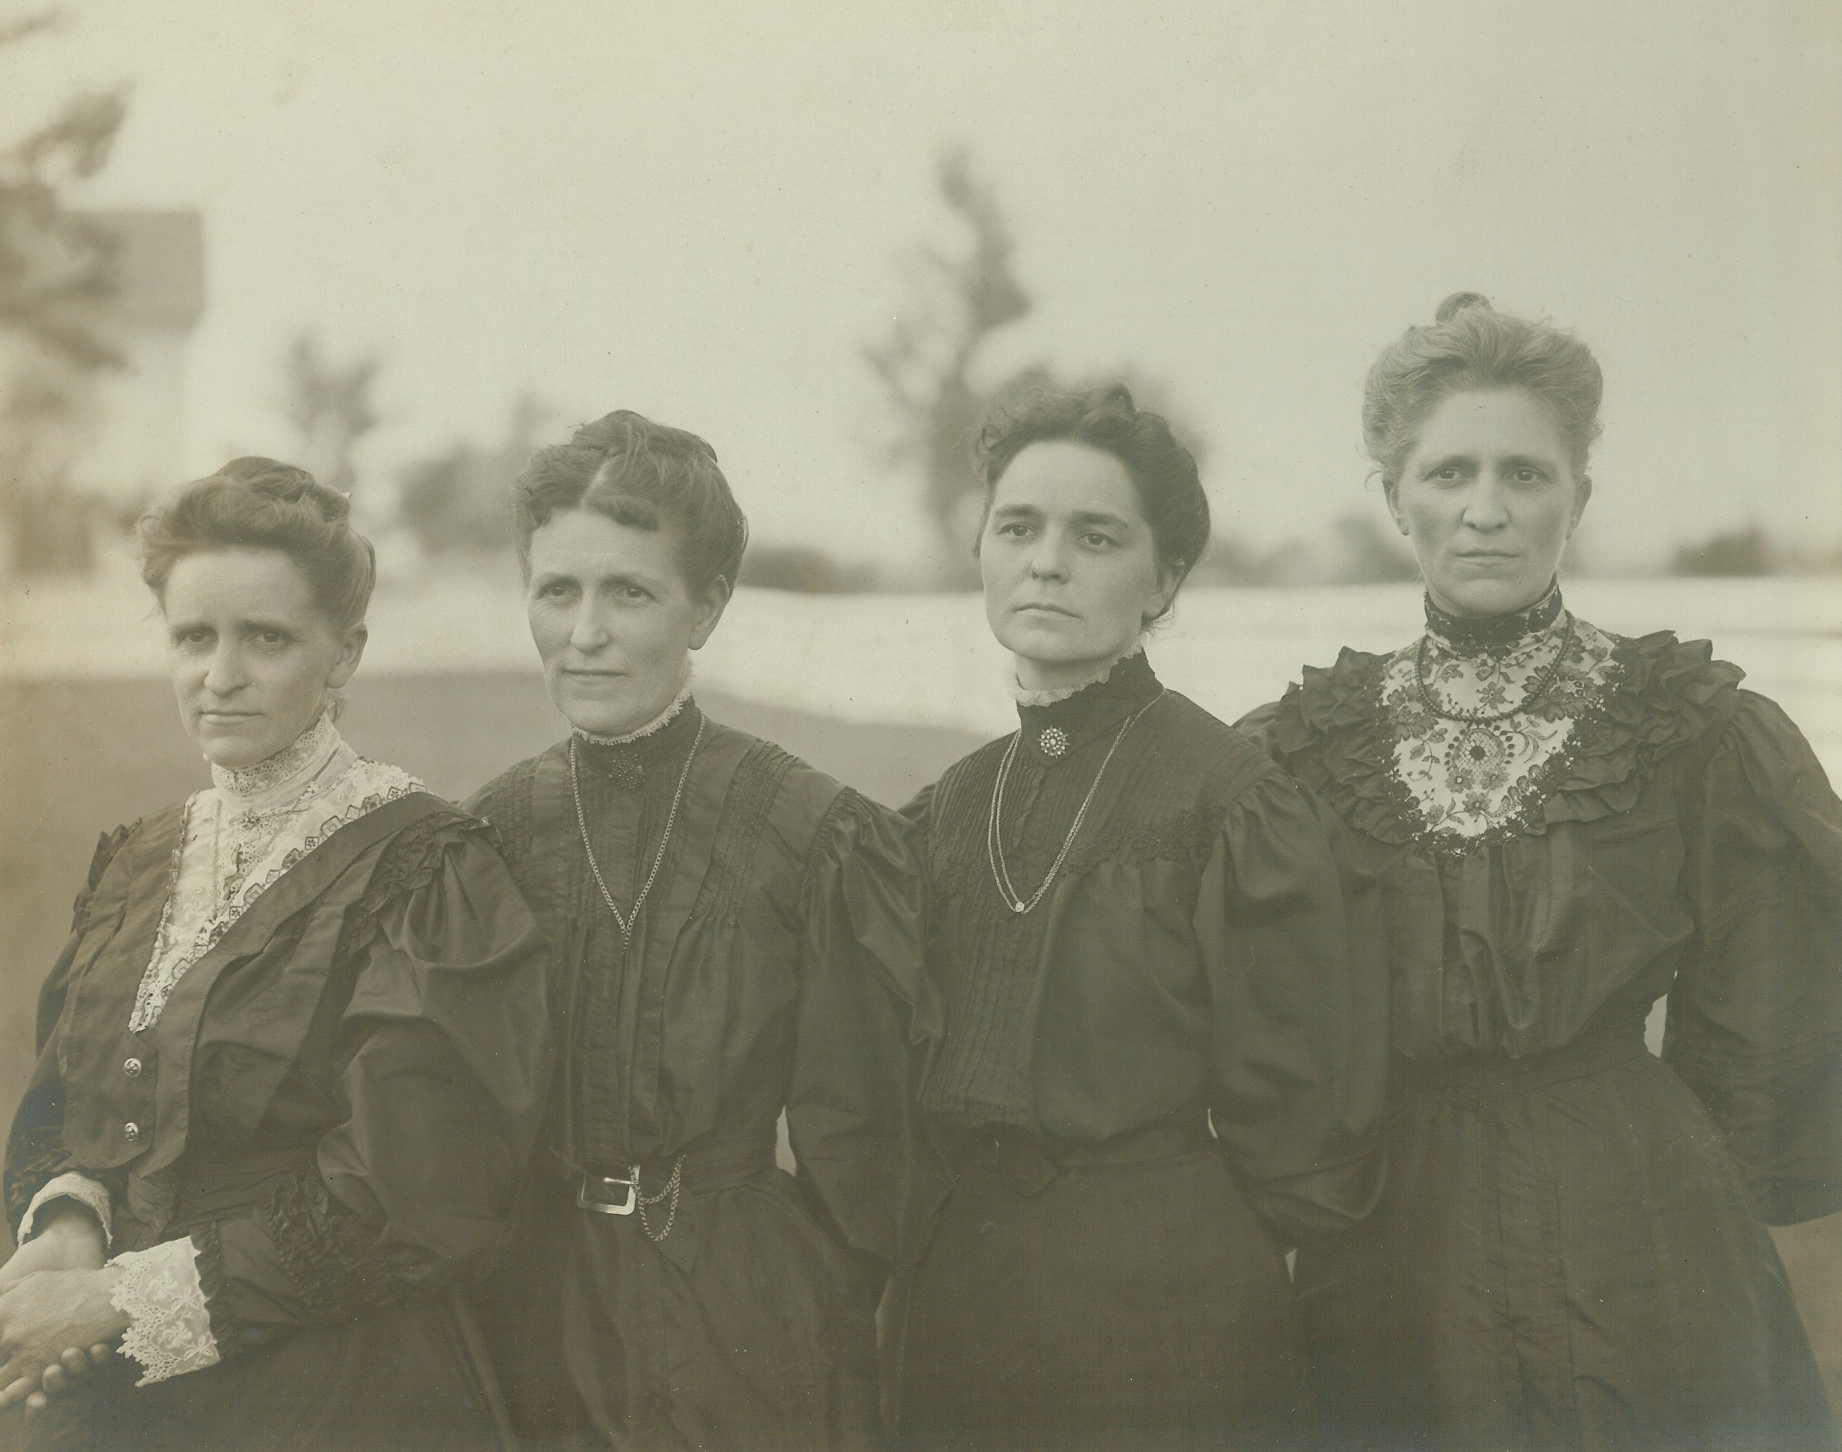 antique photo of Hains Sisters posing together